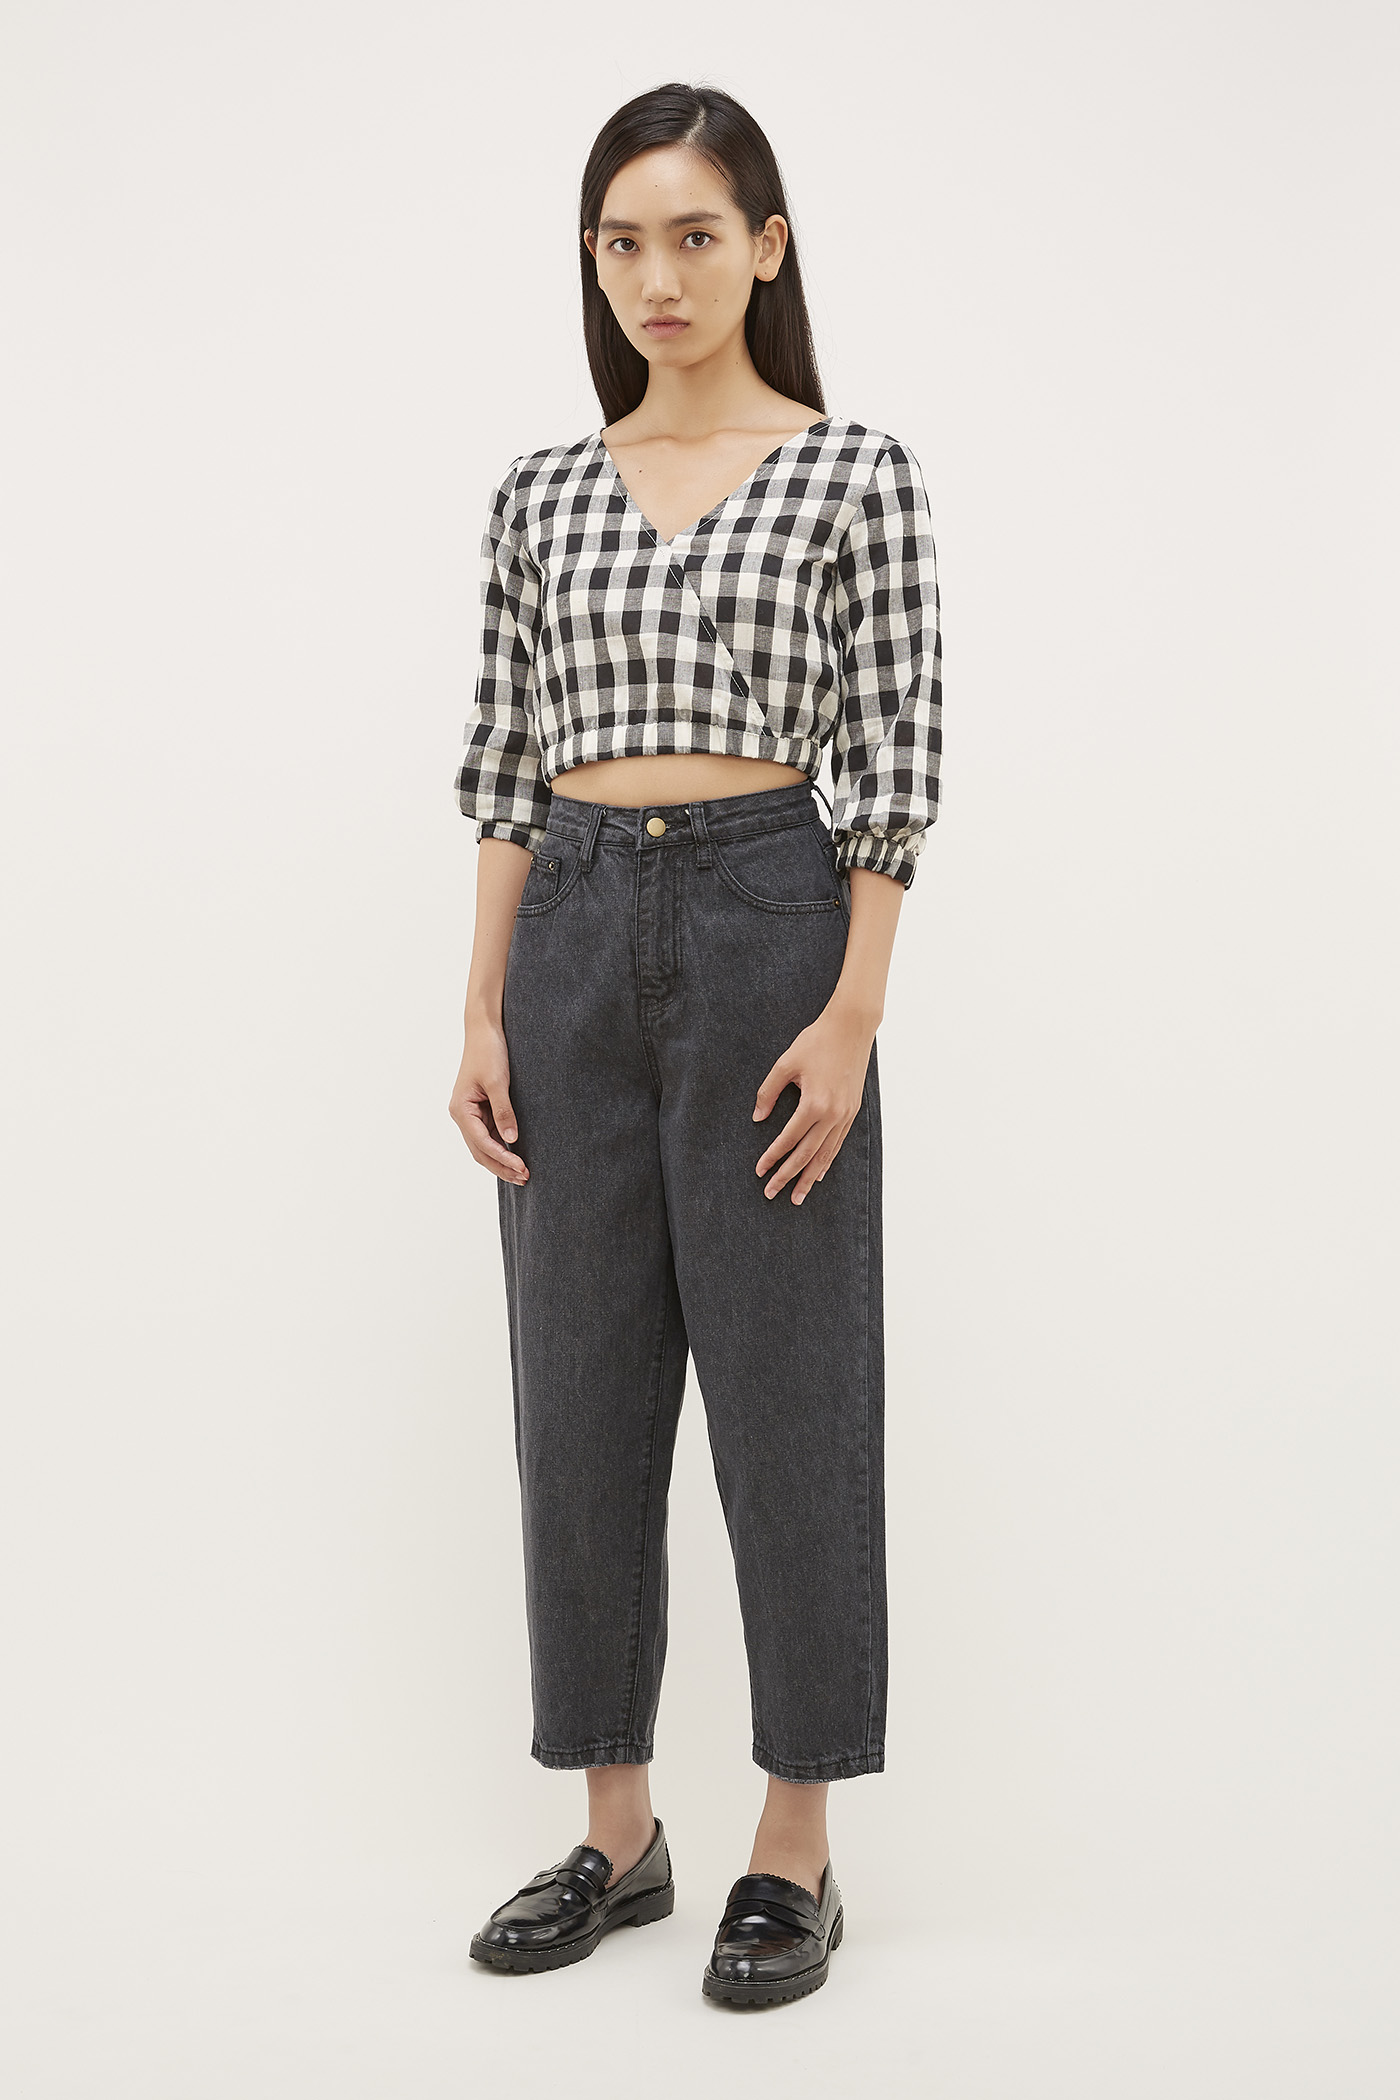 Evva High-Waisted Jeans